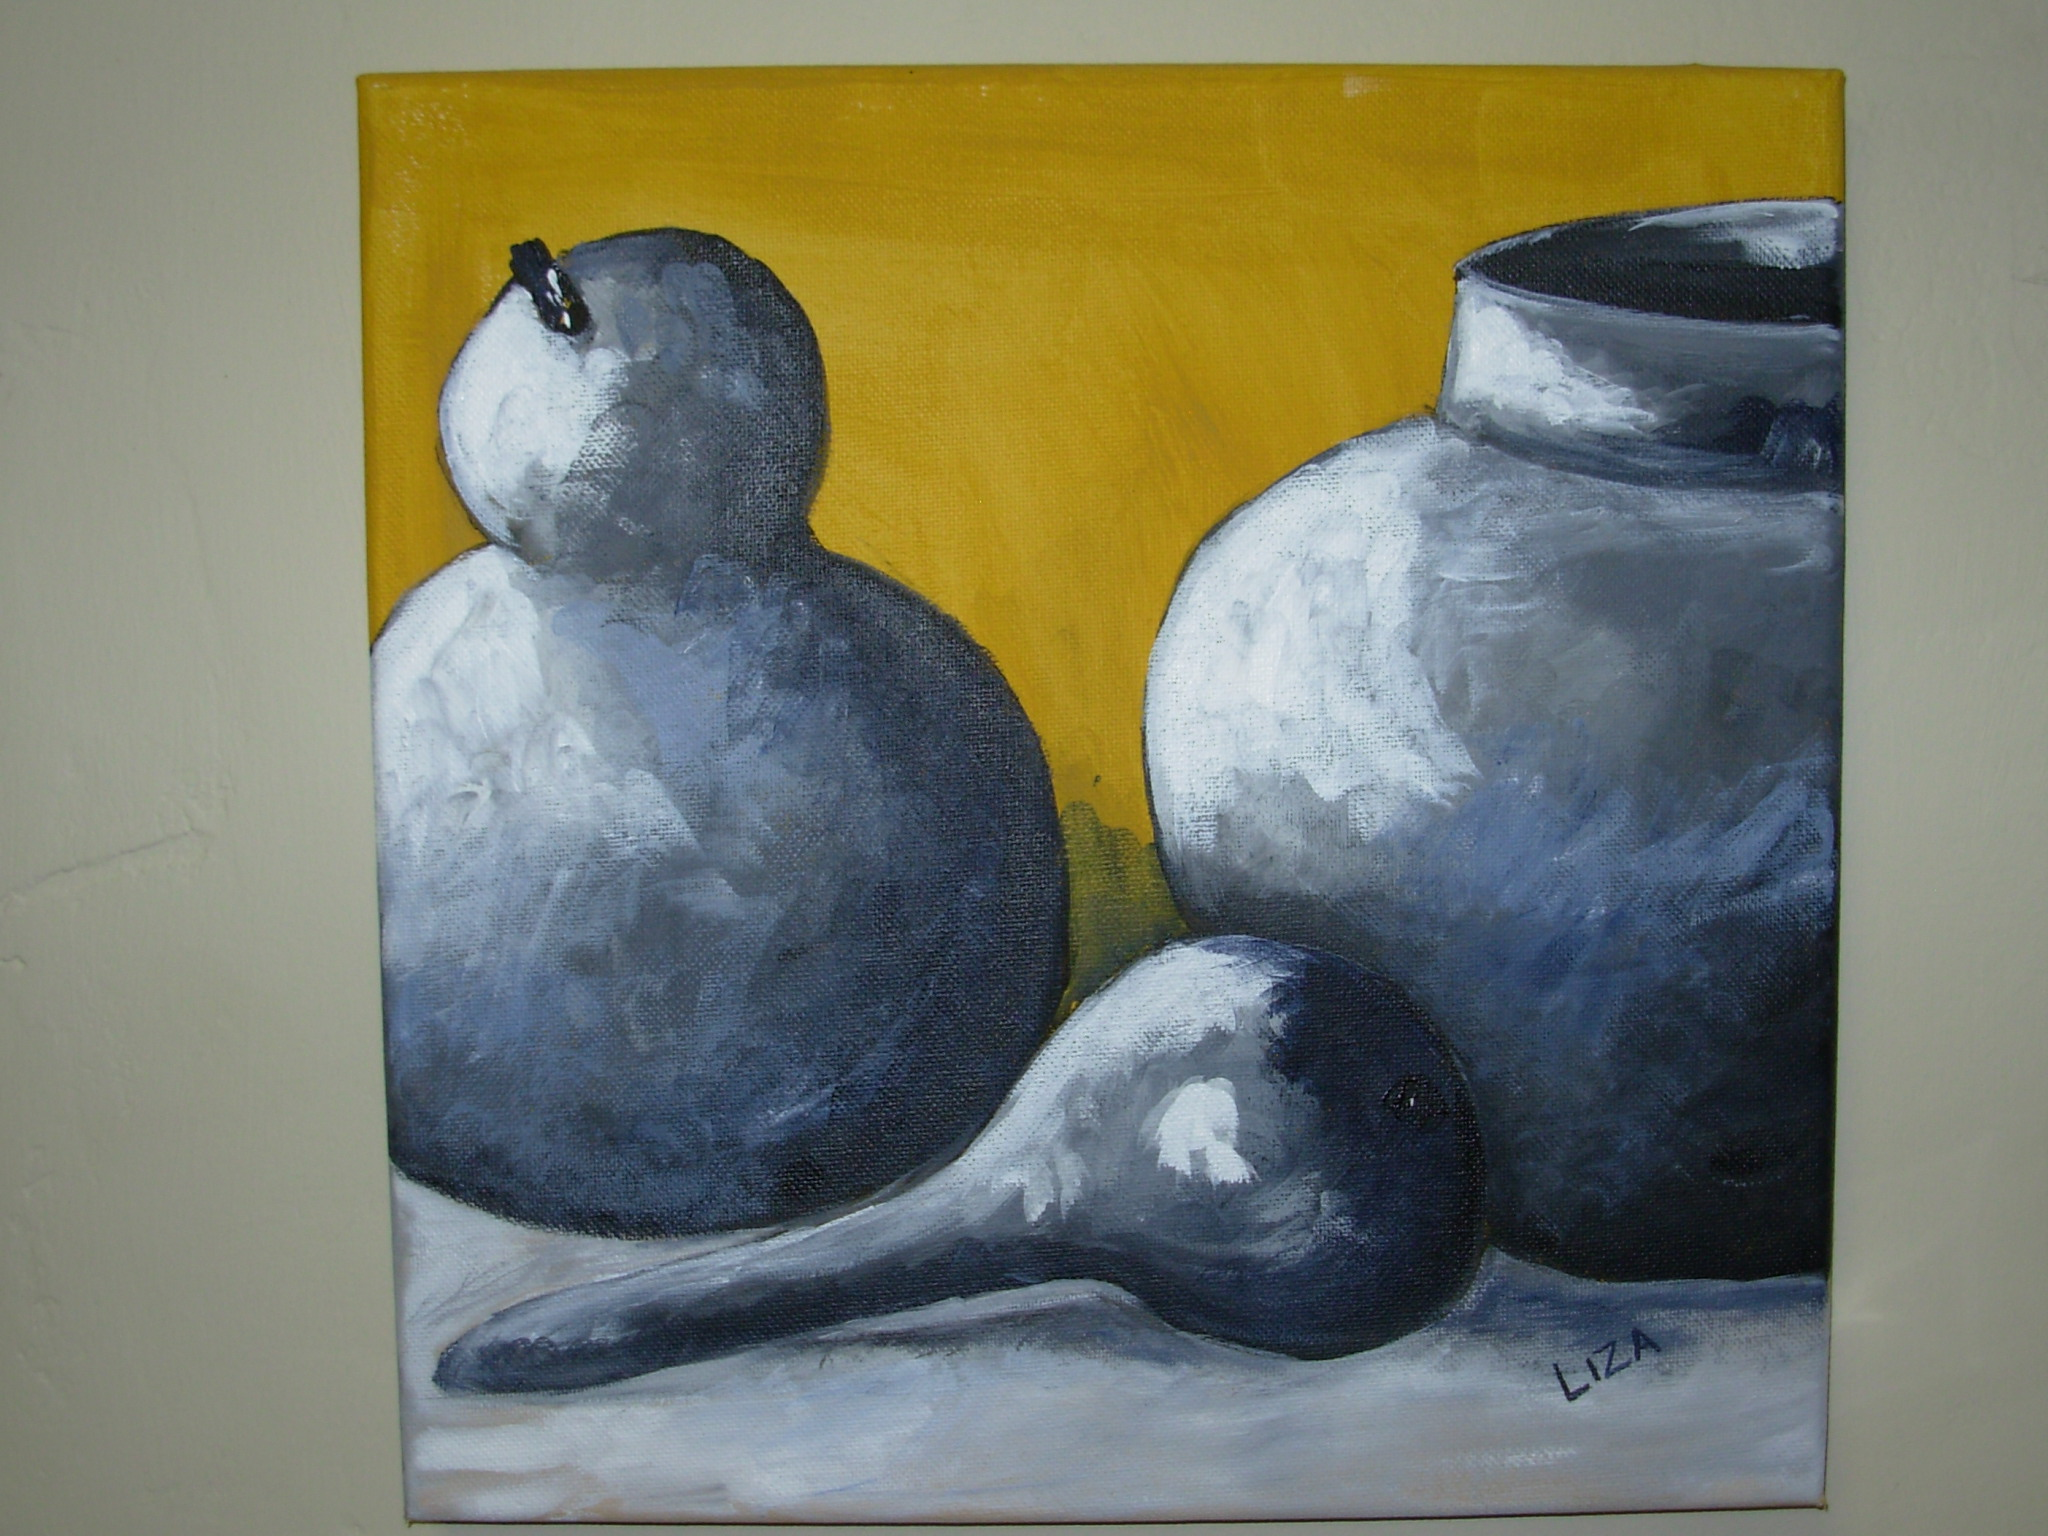 Still life - Squashes